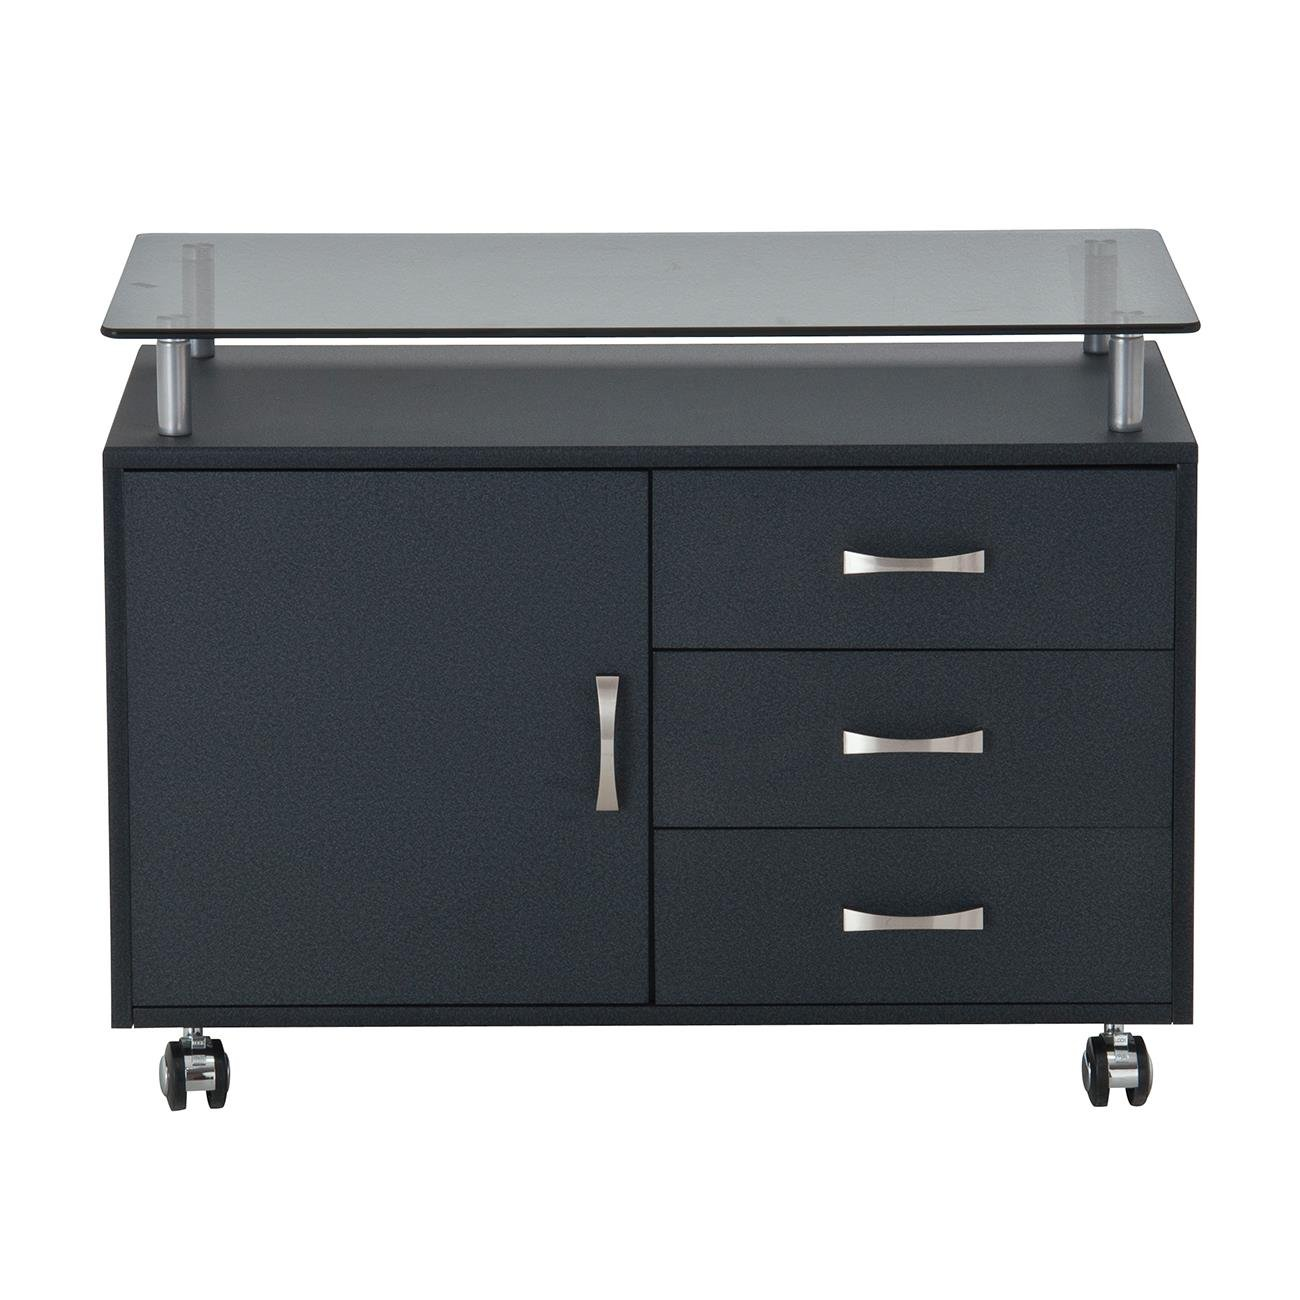 Rolling Storage Cabinet With Frosted Glass Top. Color: Graphite by Techni Mobili (Image #2)